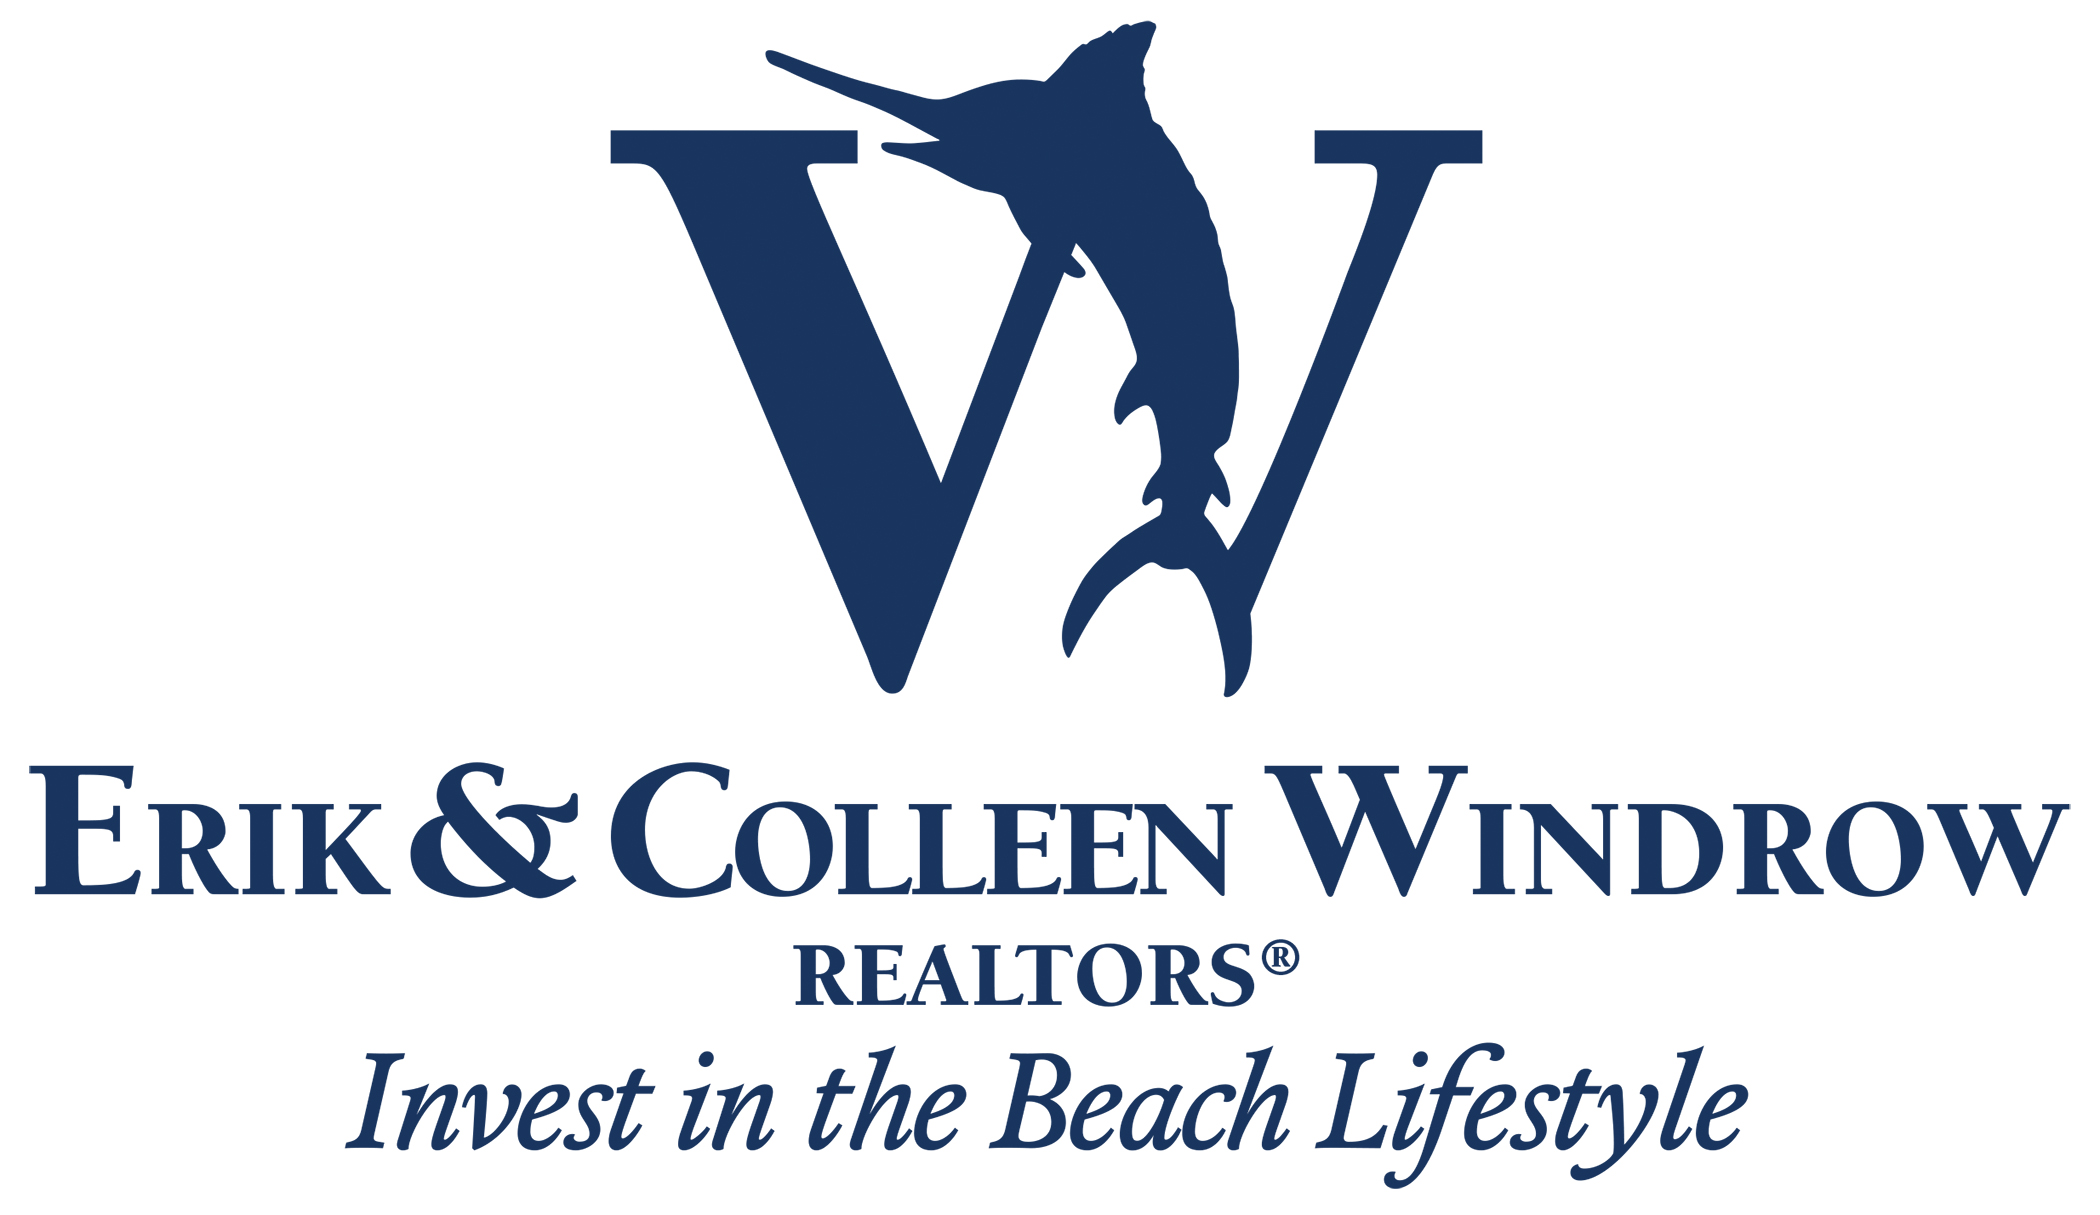 The Erik & Colleen Windrow Realtors Logo